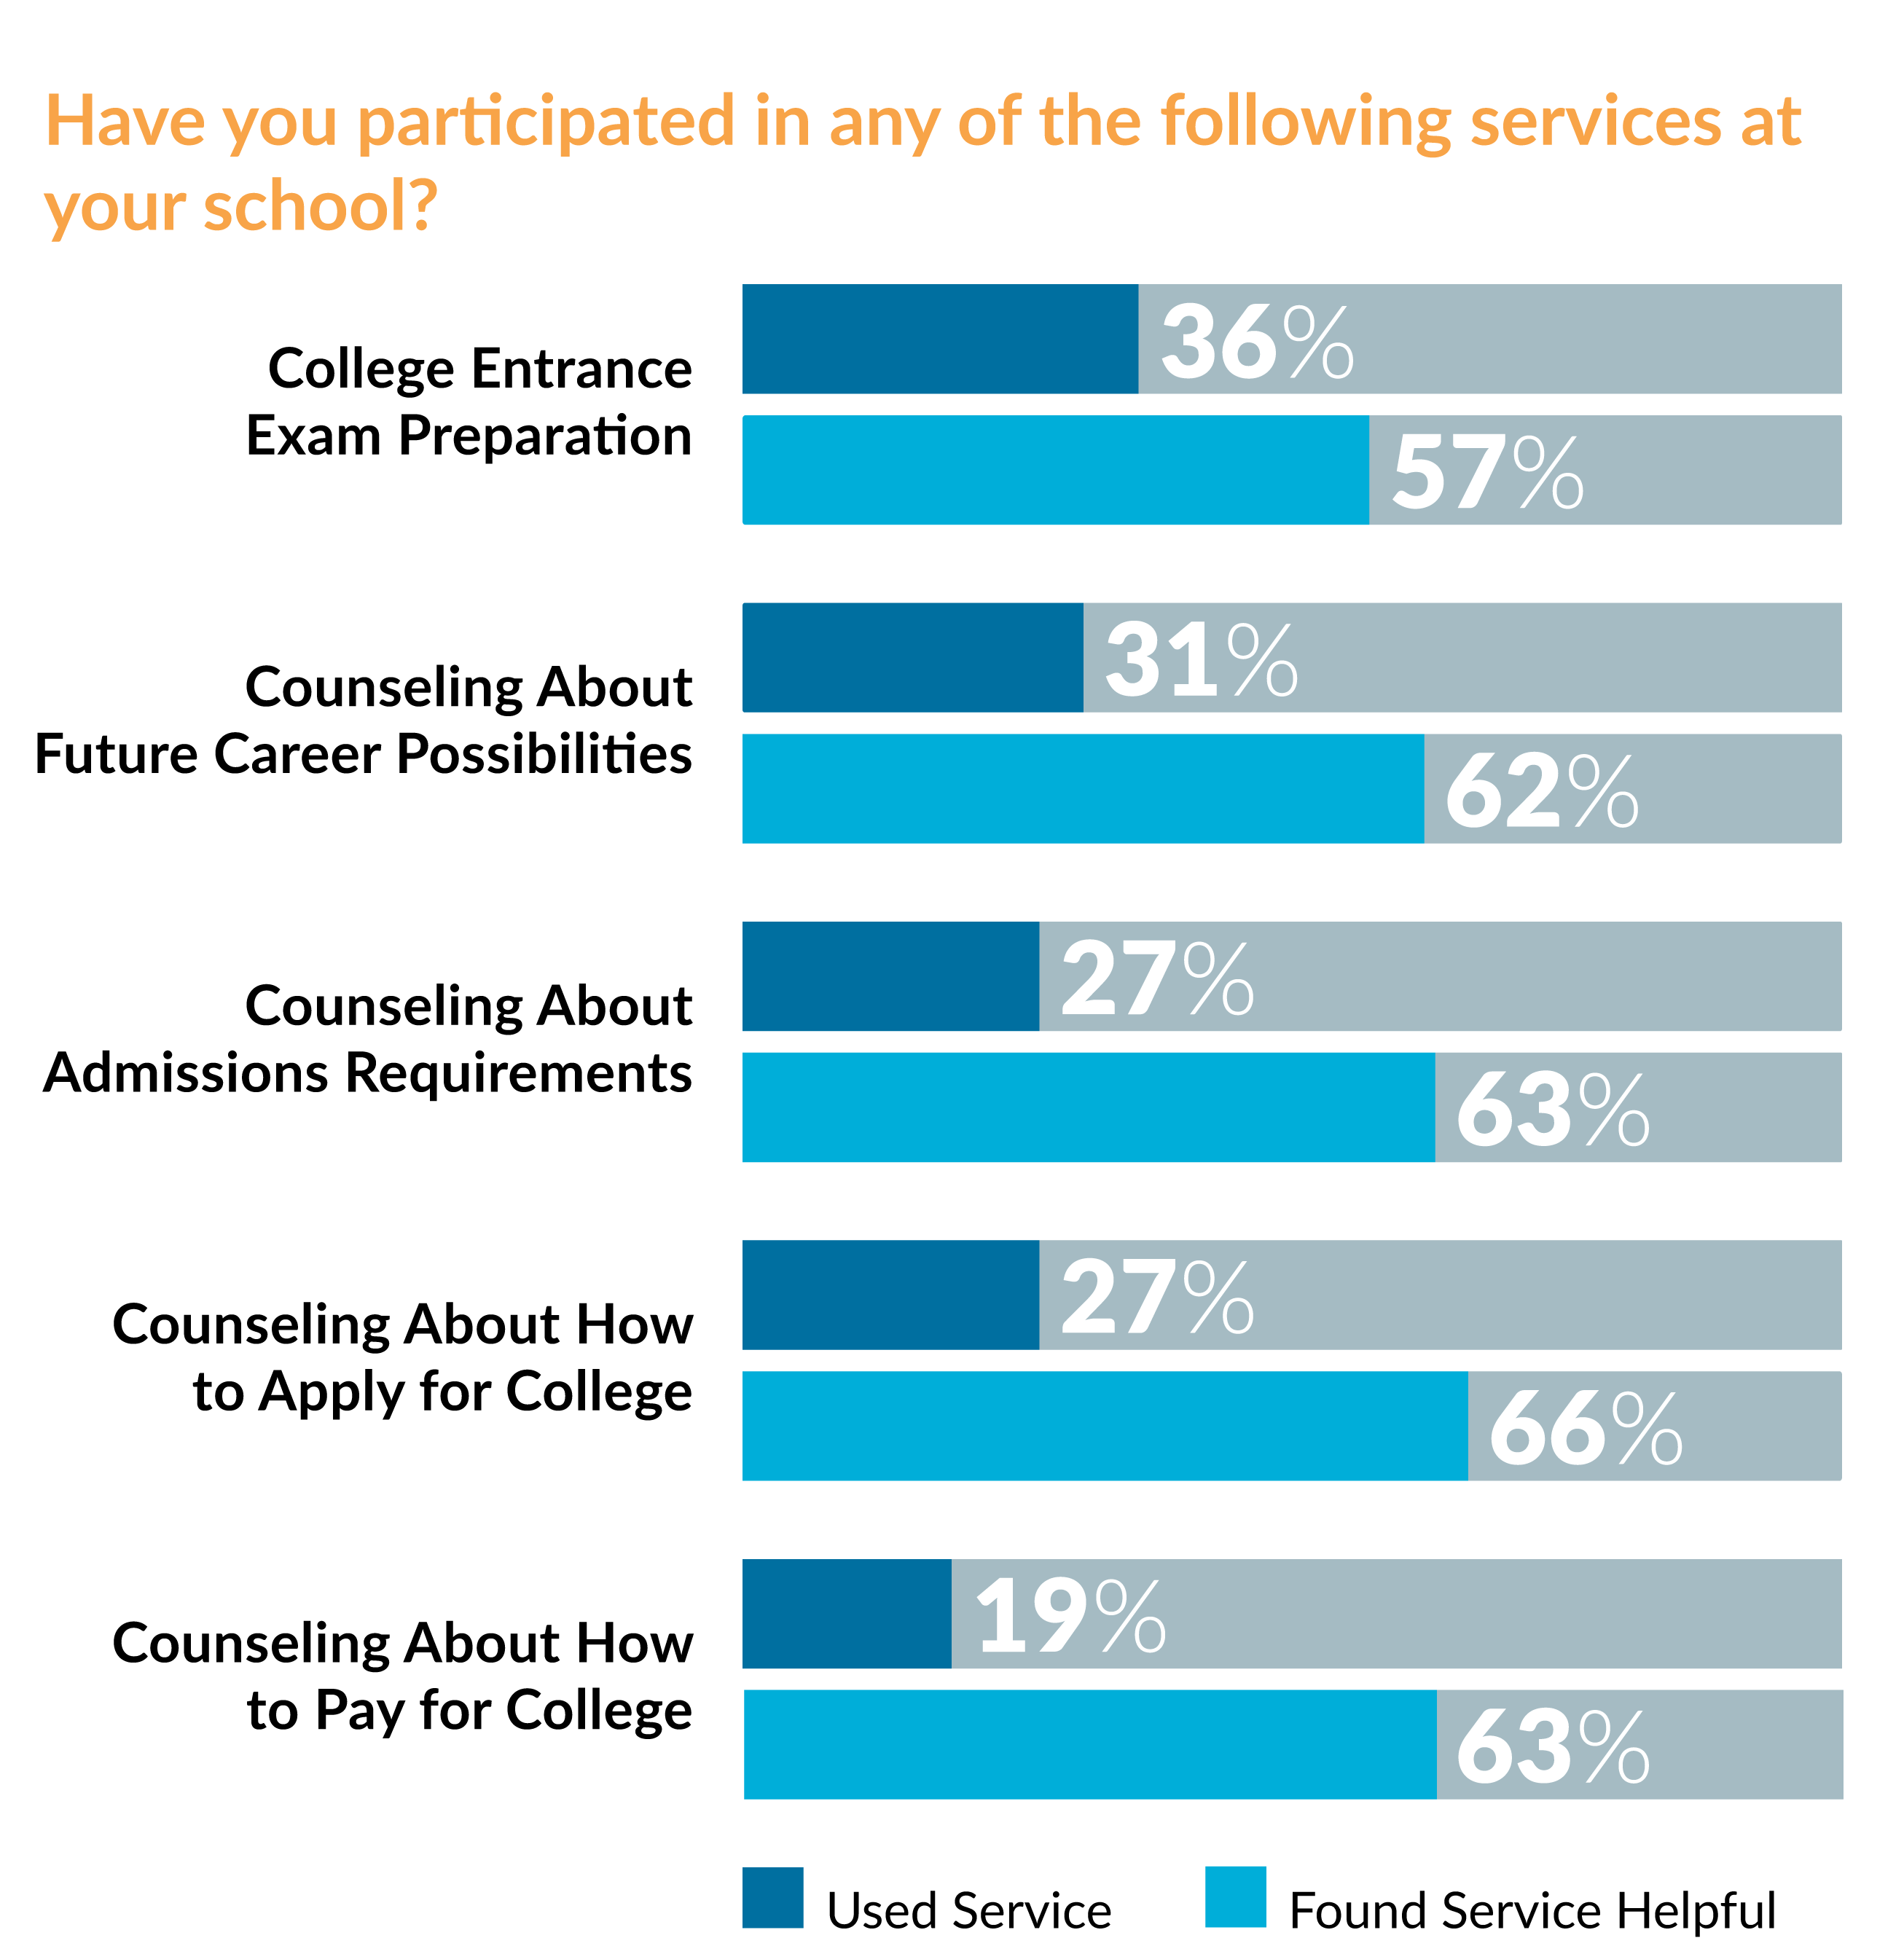 Schools Education6 25 18students: When It Comes To College, Only Half Of America's High